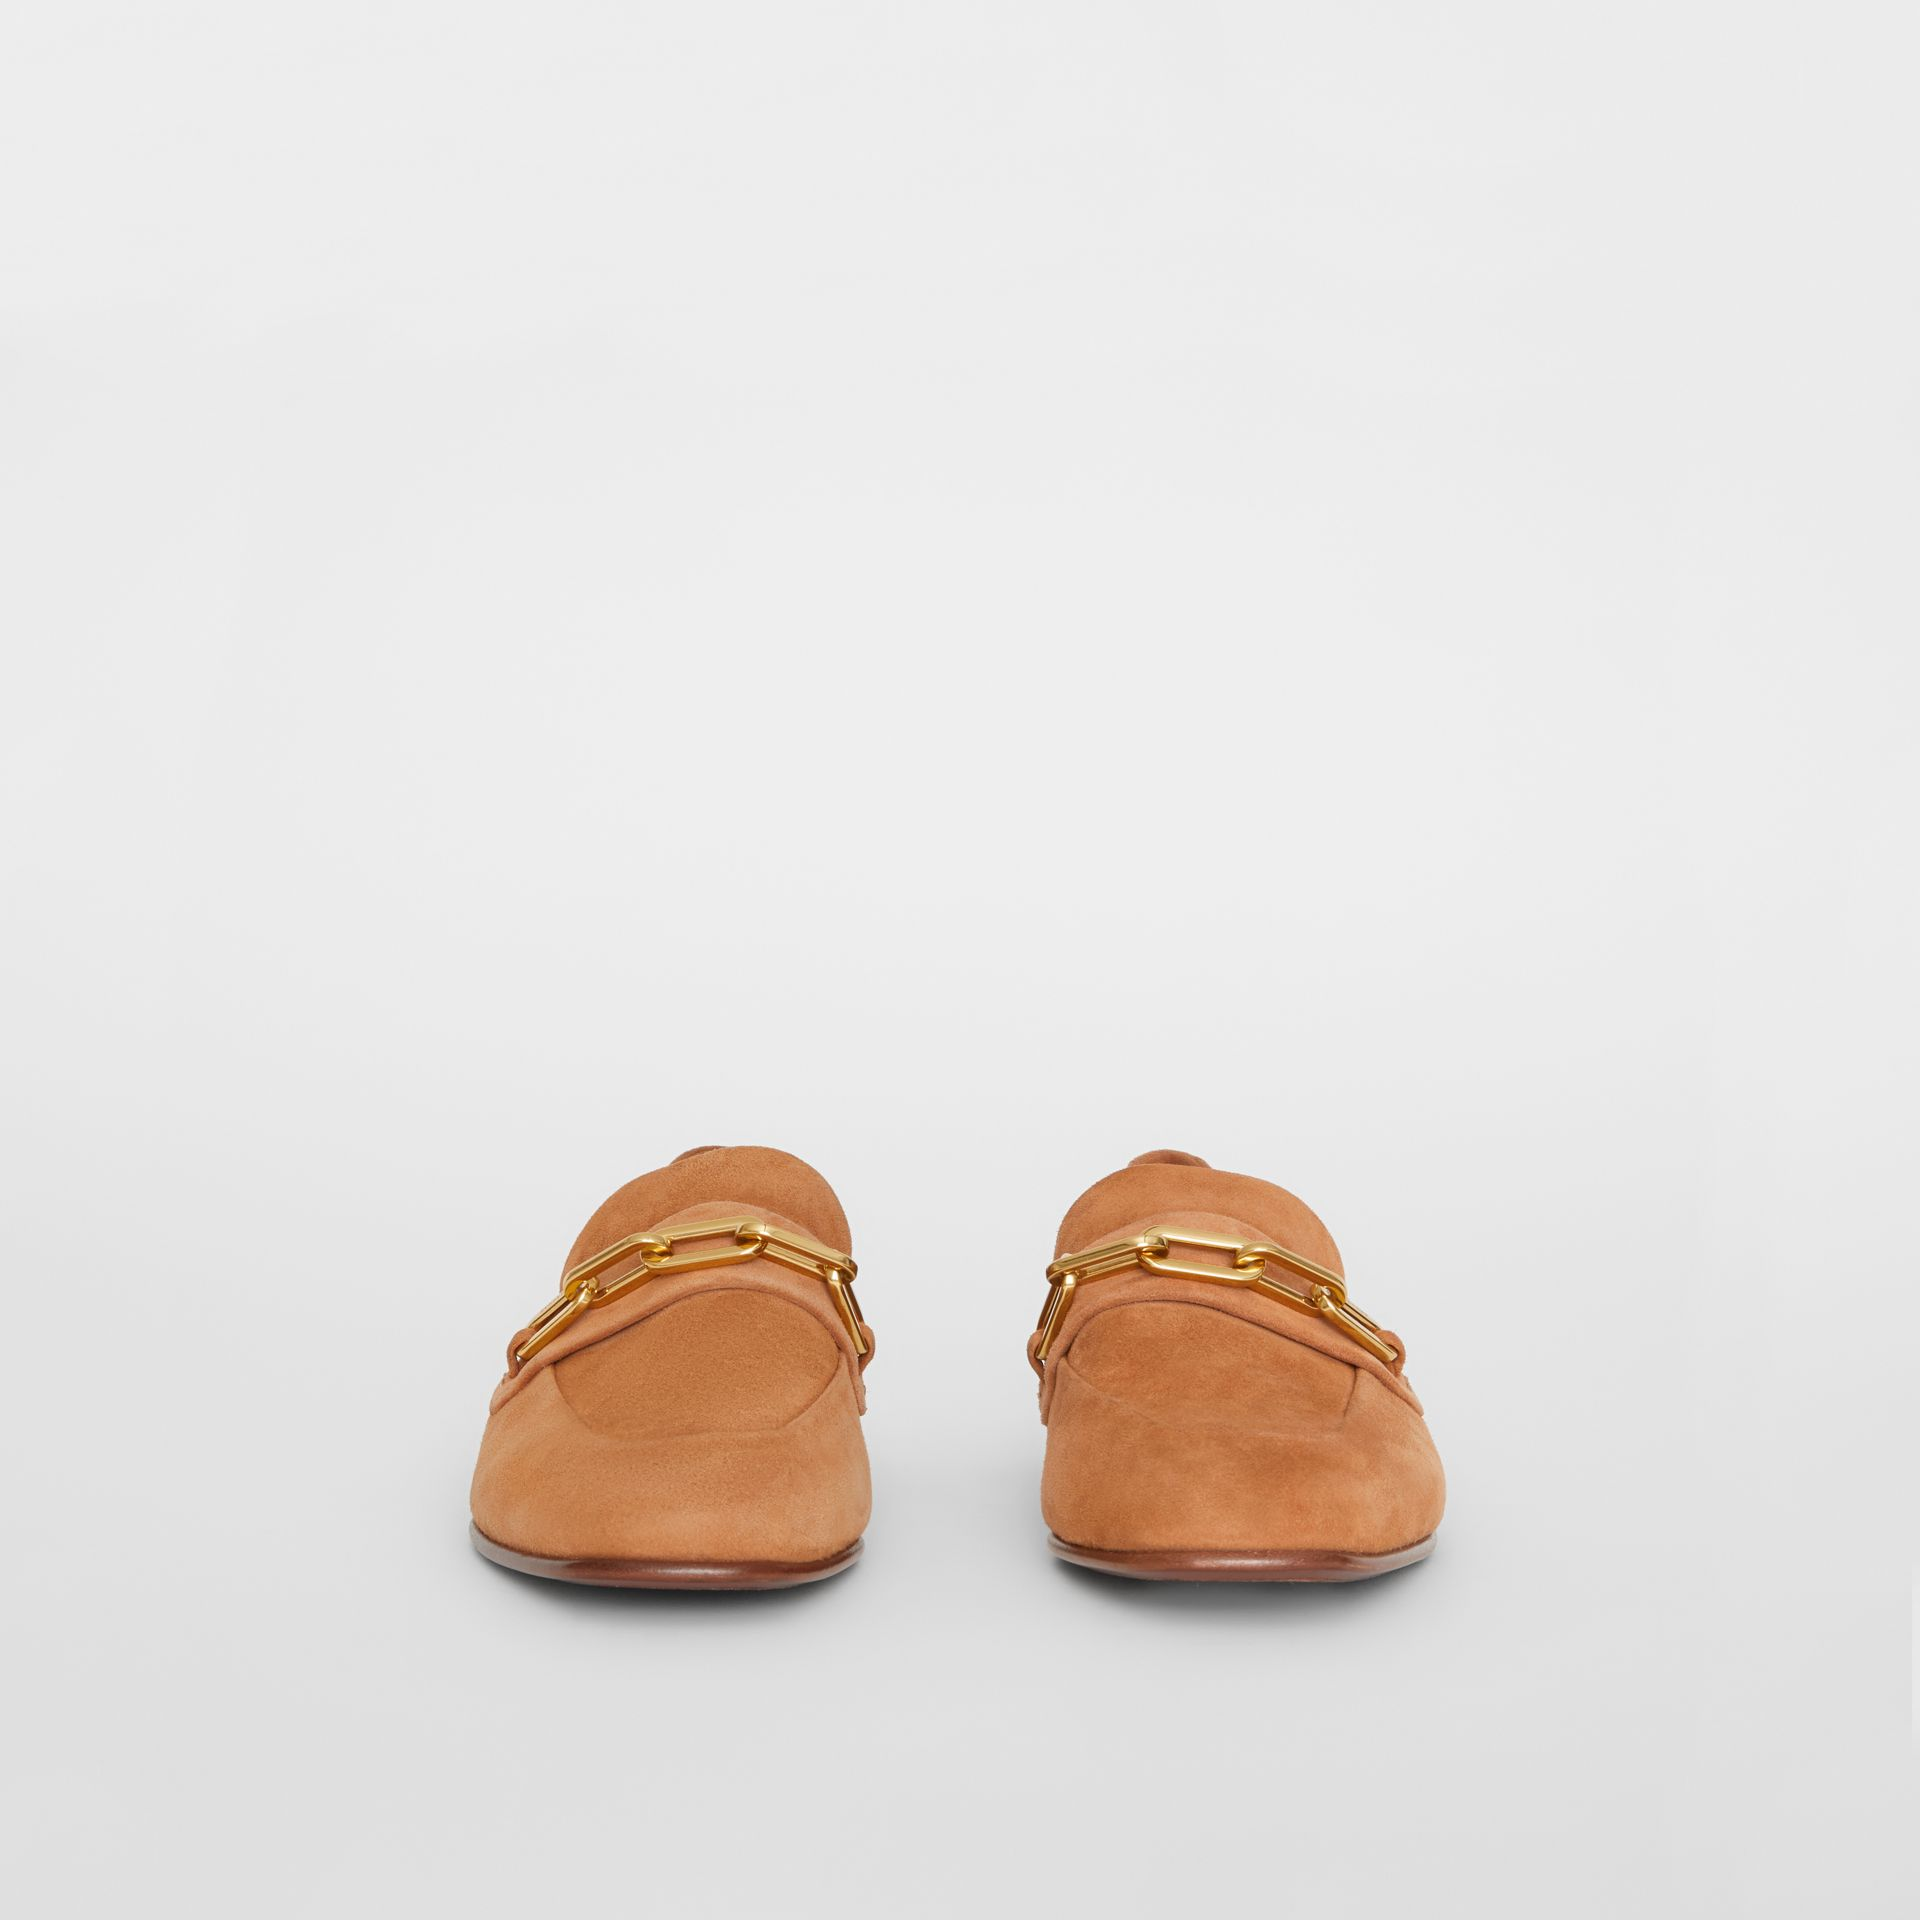 Link Detail Suede Loafers in Mid Camel - Women | Burberry - gallery image 3